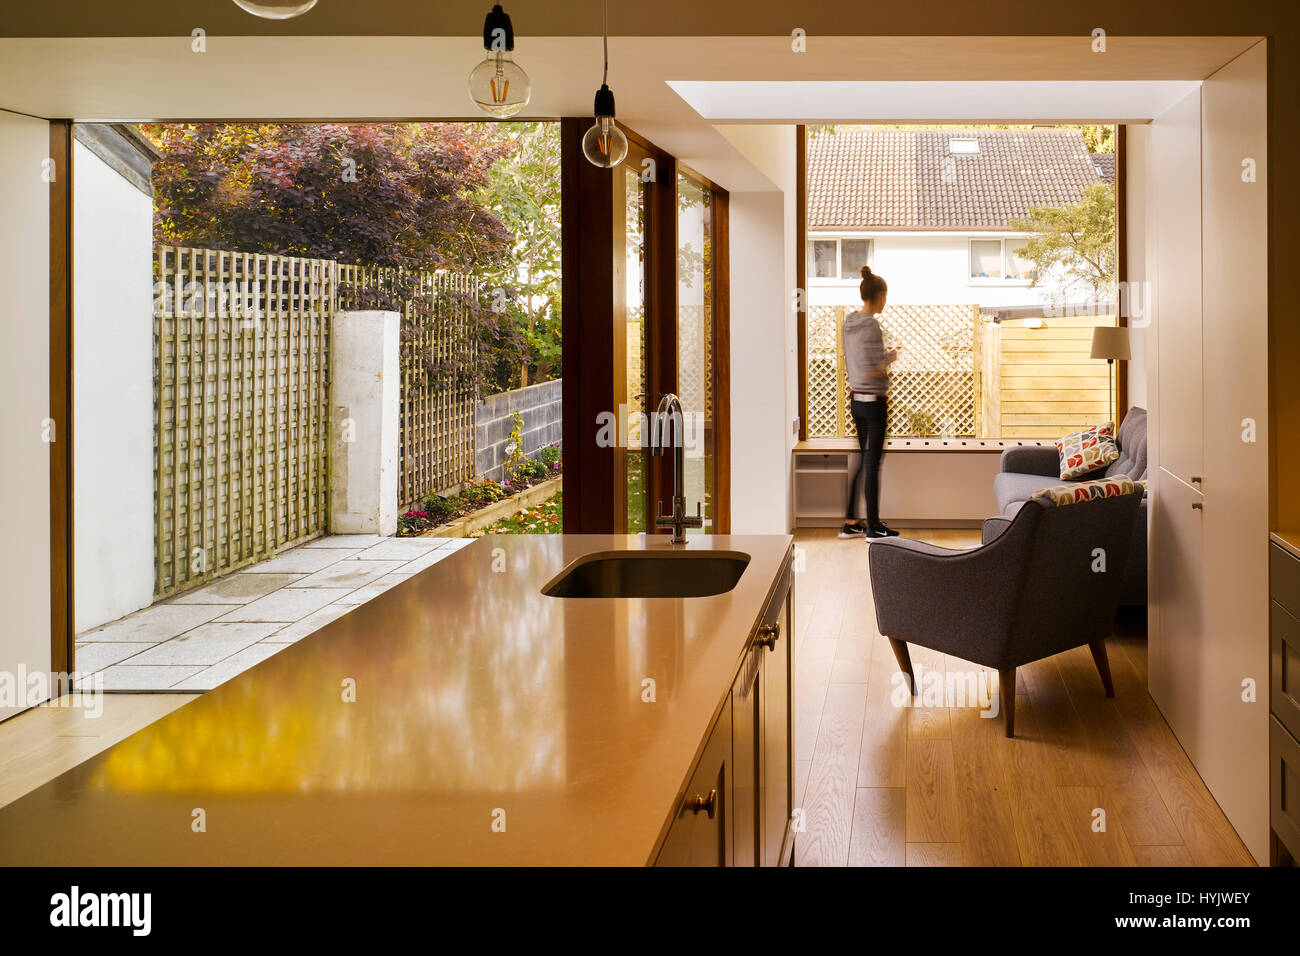 Interior view of living area showing counter and figure. Extension to House, Stillorgan, Dublin, Ireland. Architect: - Stock Image